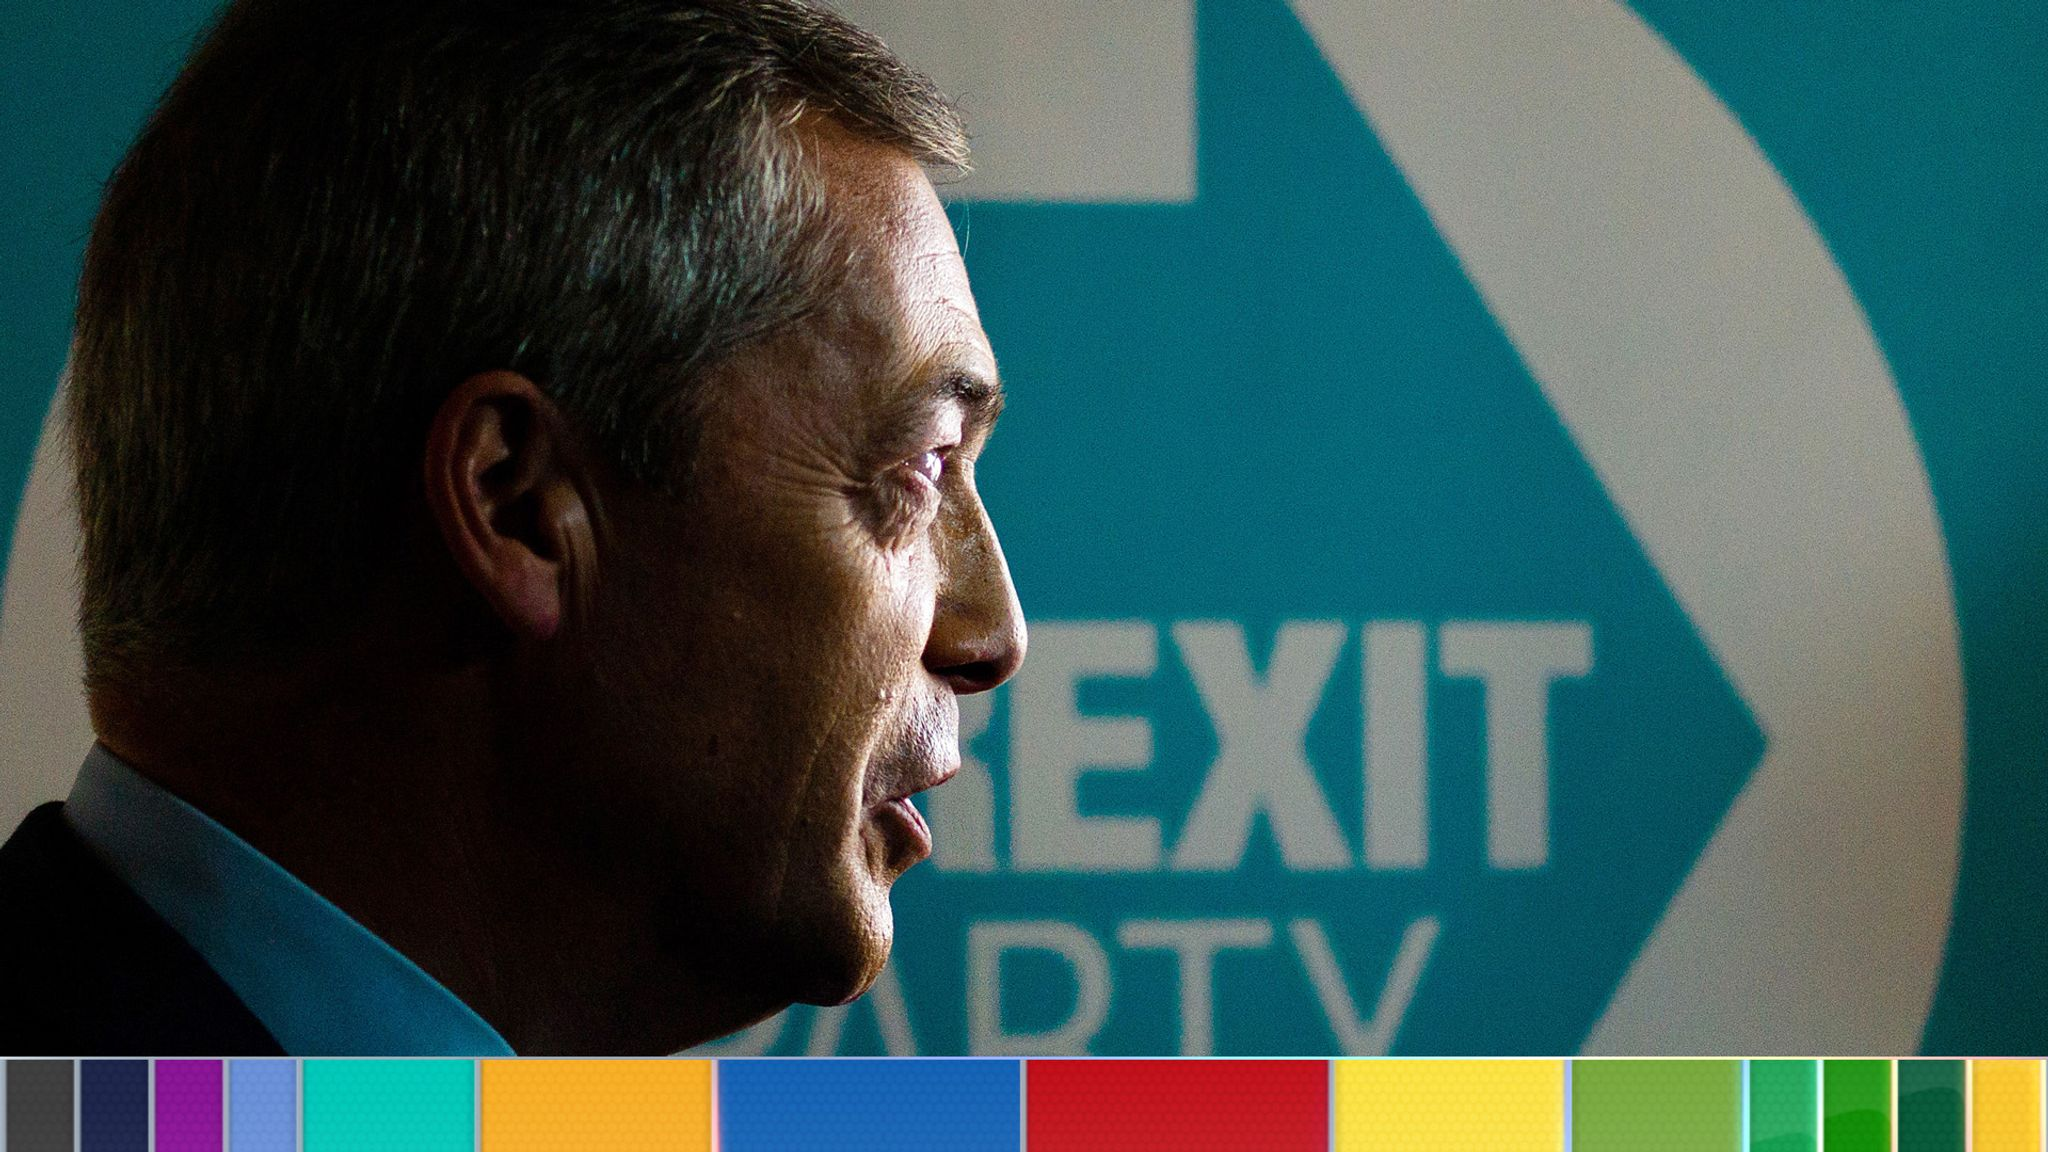 General election: Six key constituencies where the Brexit Party's stance could prove pivotal